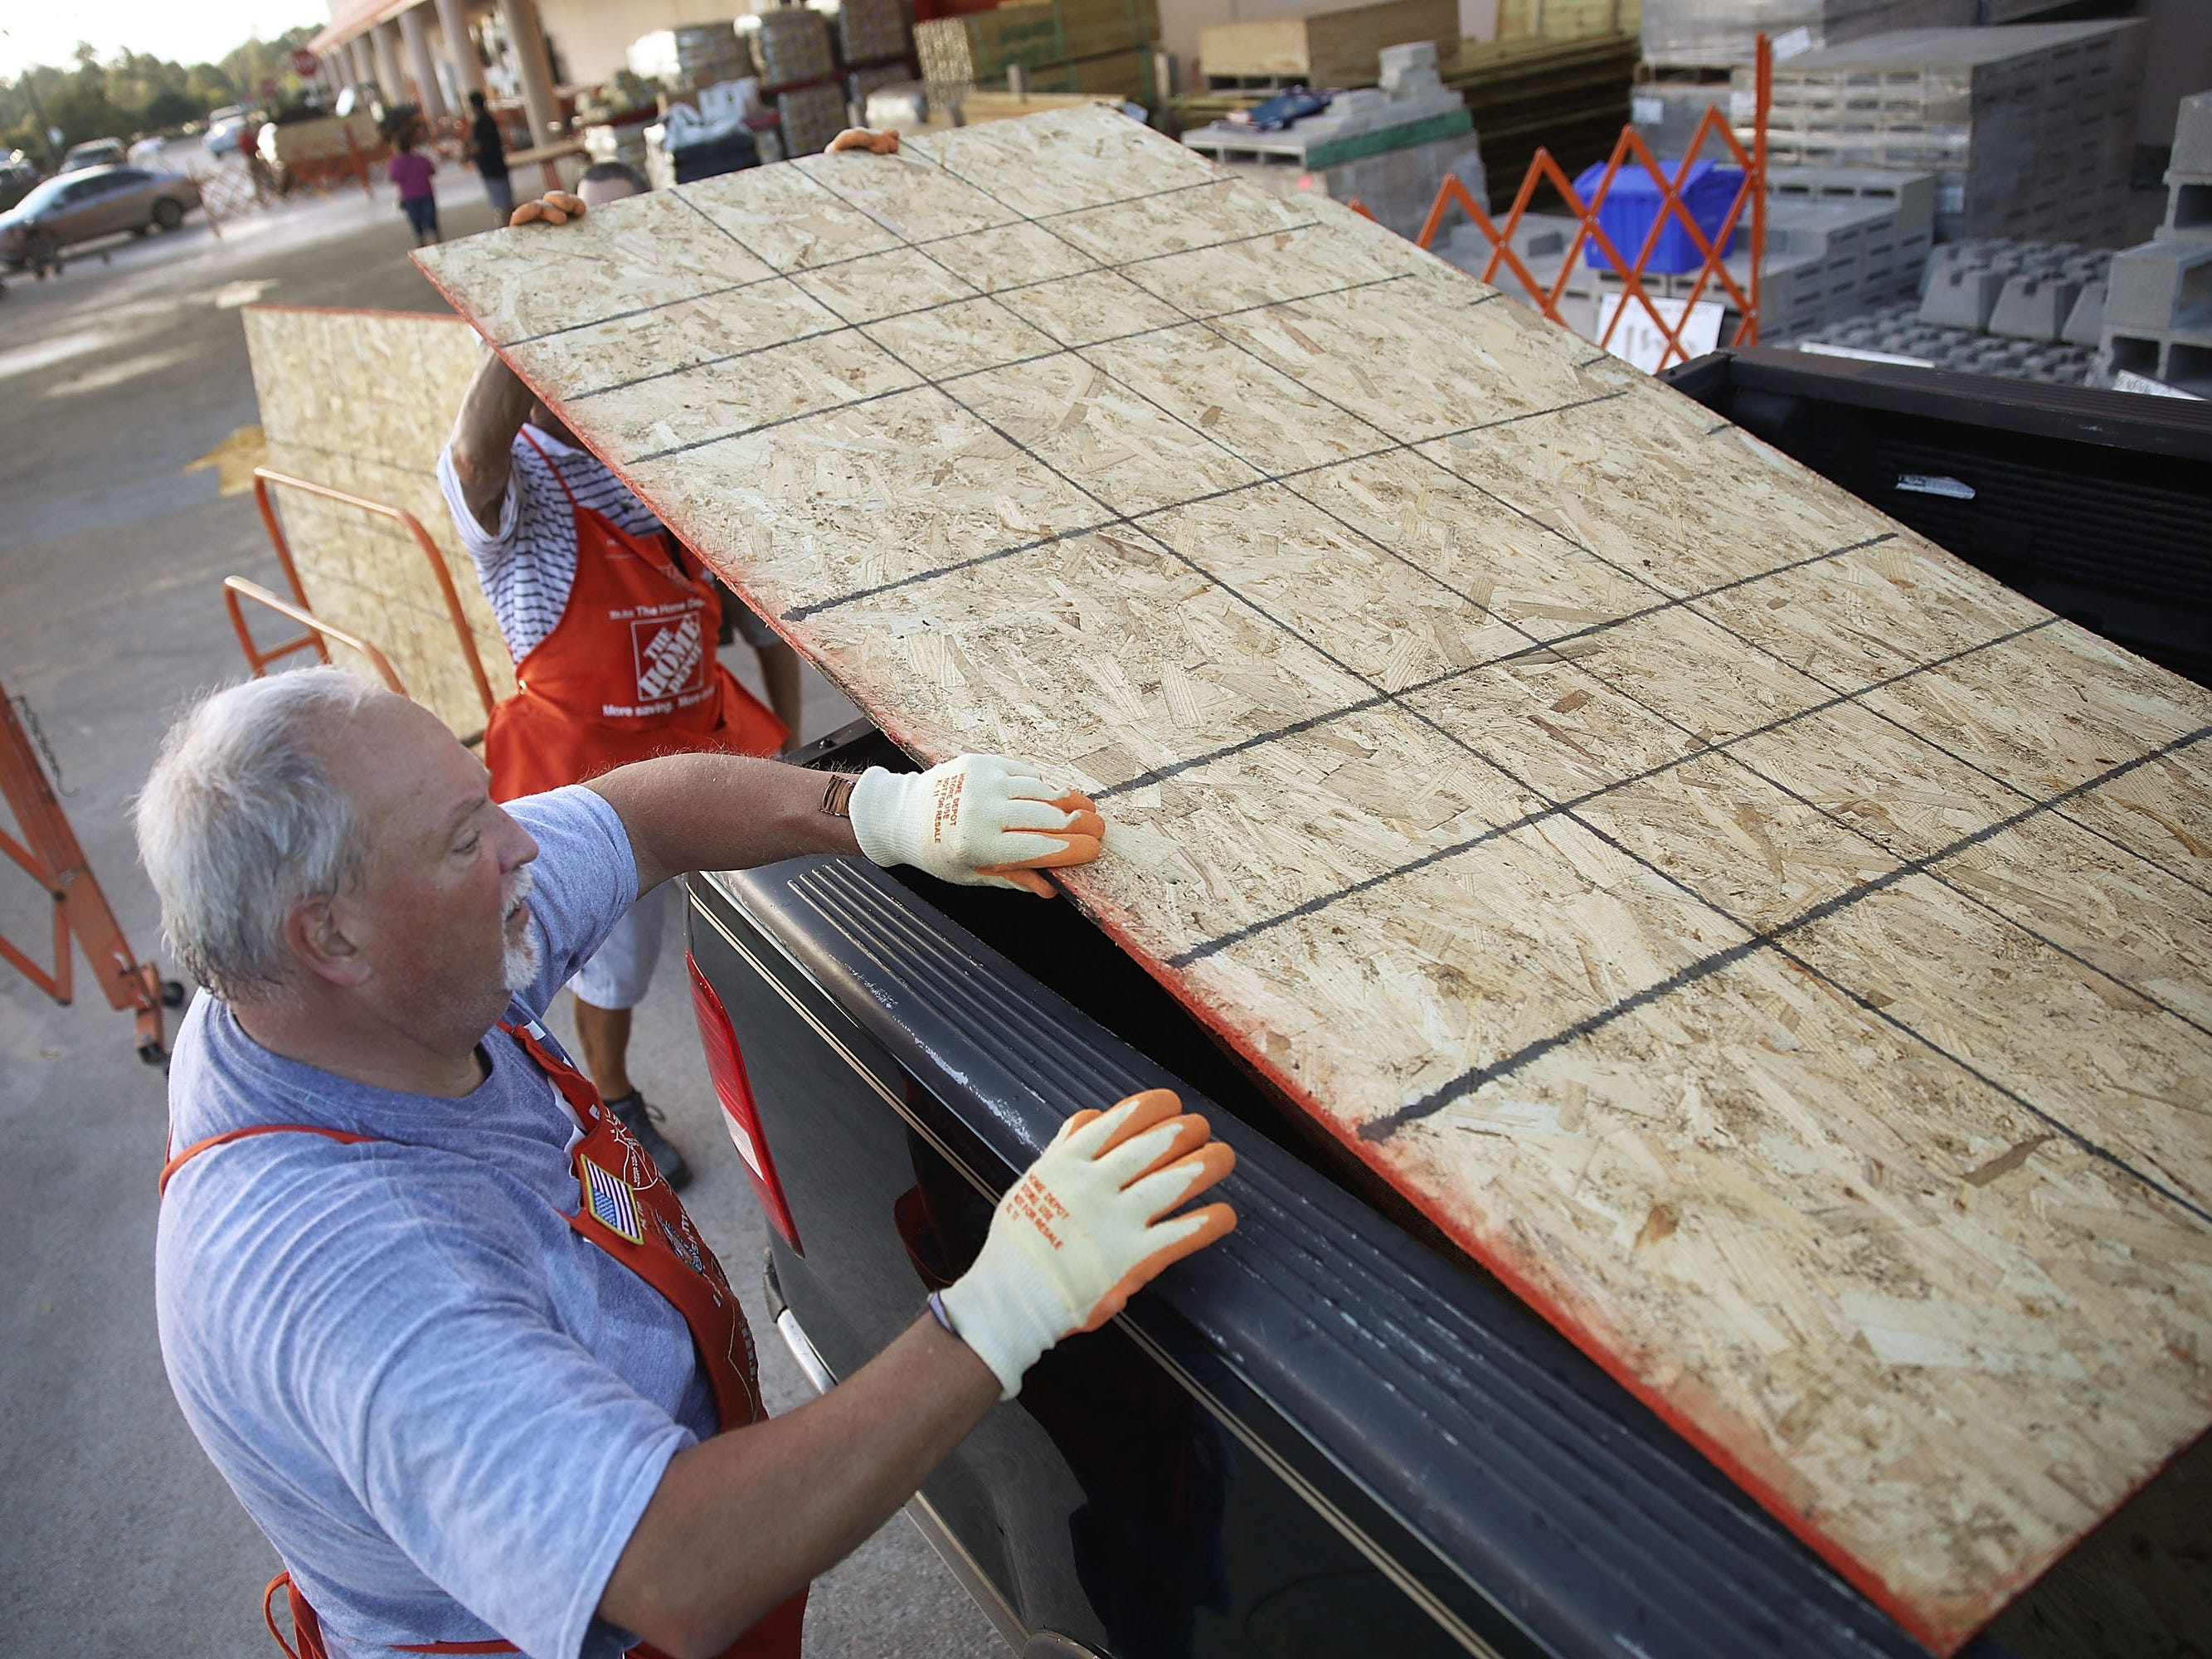 MYRTLE BEACH, SC - SEPTEMBER 11:   Home Depot employee Jim Brown helps a customer load plywood into his truck as residents prepare for the arrival of Hurricane Florence on September 11, 2018 in Myrtle Beach, United States. Hurricane Florence is expected on Friday possibly as a category 4 storm along the  Virginia, North Carolina and South Carolina coastline. (Photo by Joe Raedle/Getty Images) ORG XMIT: 775225768 ORIG FILE ID: 1031228544